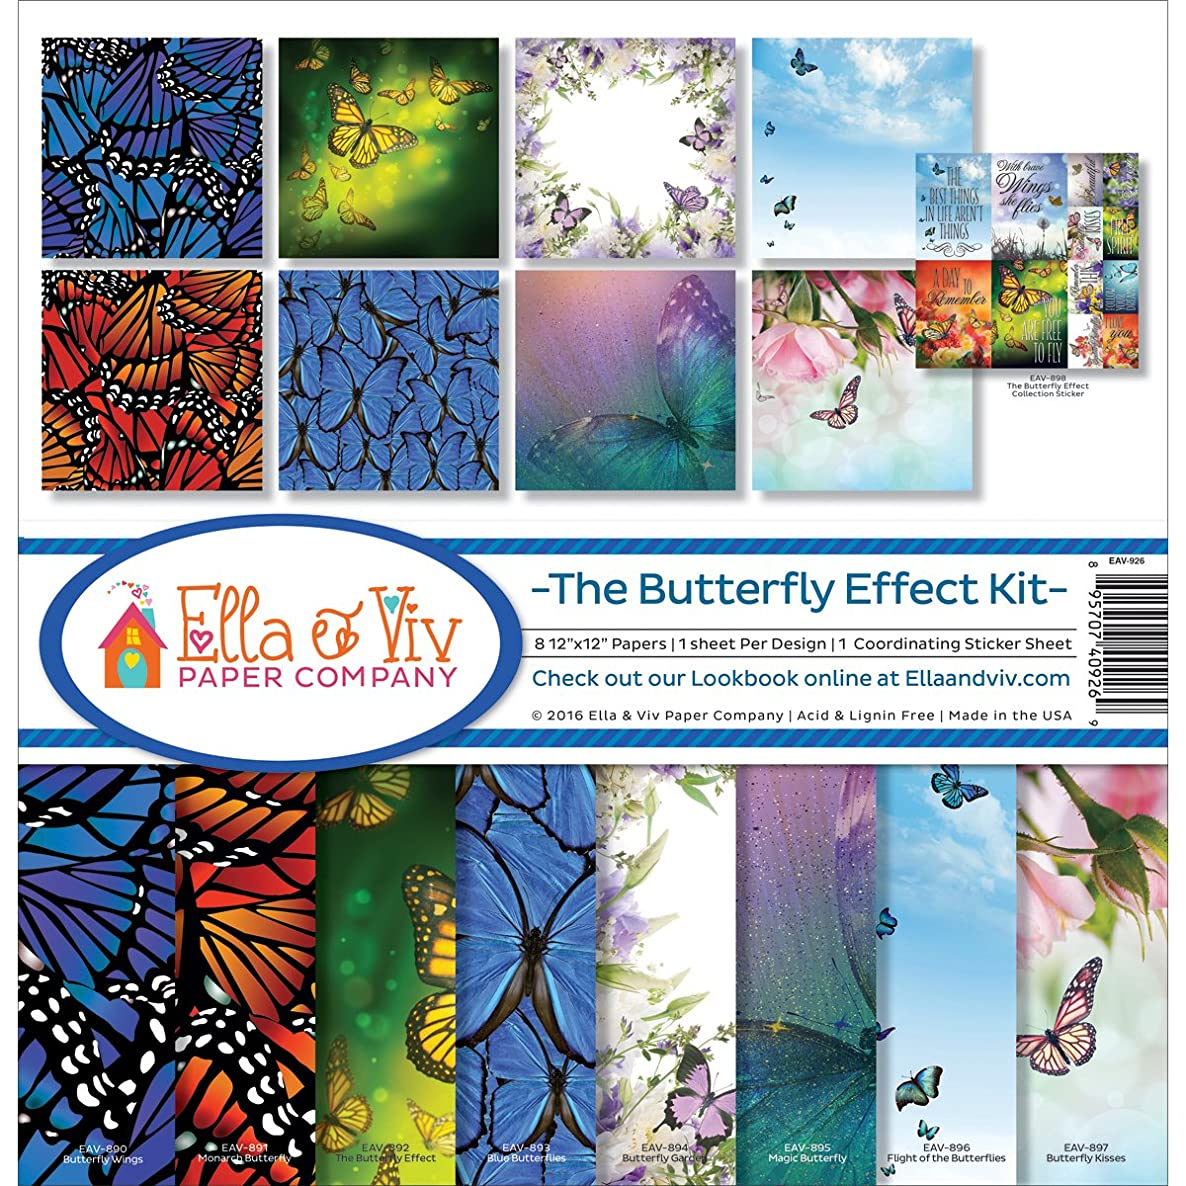 Ella & Viv by Reminisce Ella and Viv The Butterfly Effect Kit